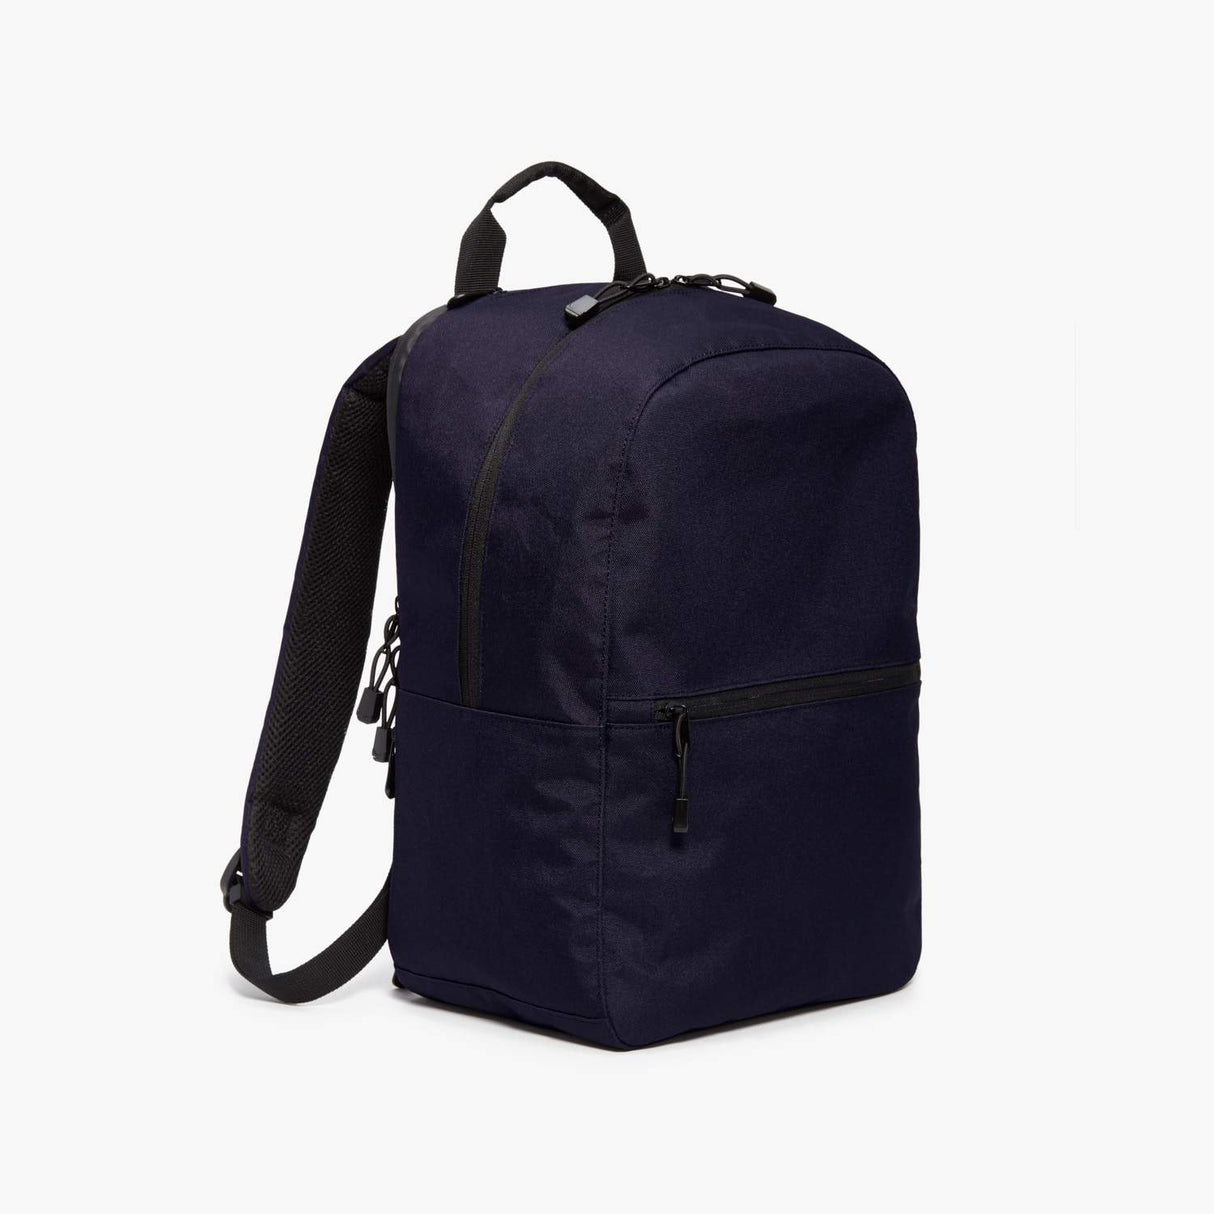 Side - Hanover 2 - 600D Recycled Poly - Deep Navy - Backpack - Lo & Sons